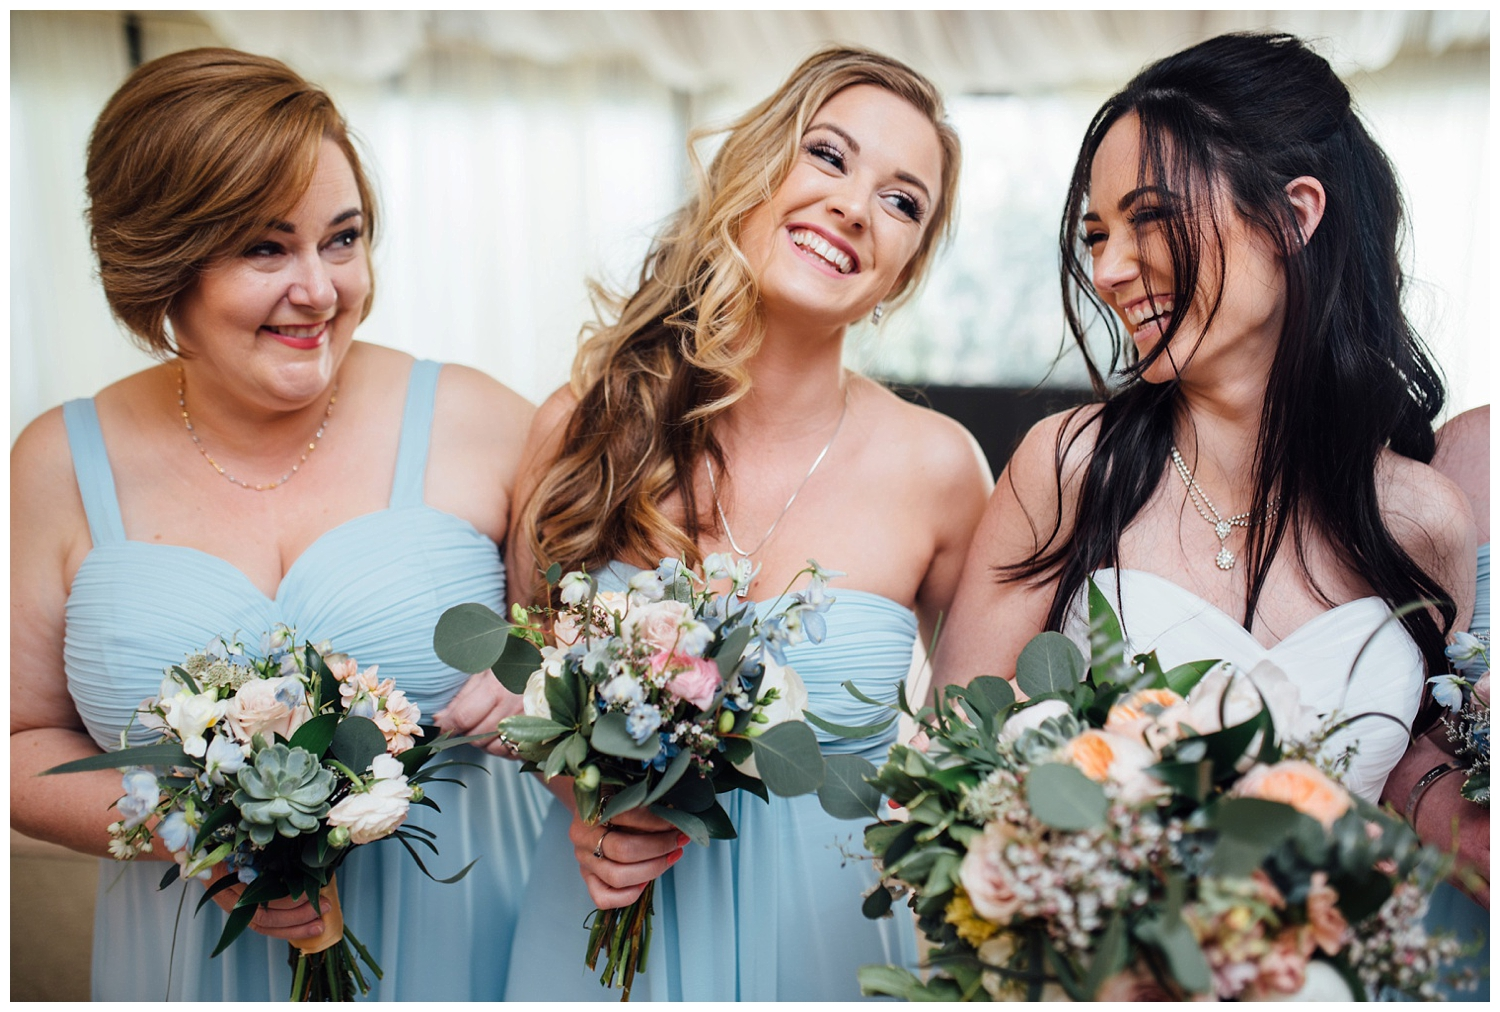 New York, New Jersey and Pennsylvania wedding vendors, resources and inspiration for the modern couple | Bridesmaids light blue dresses